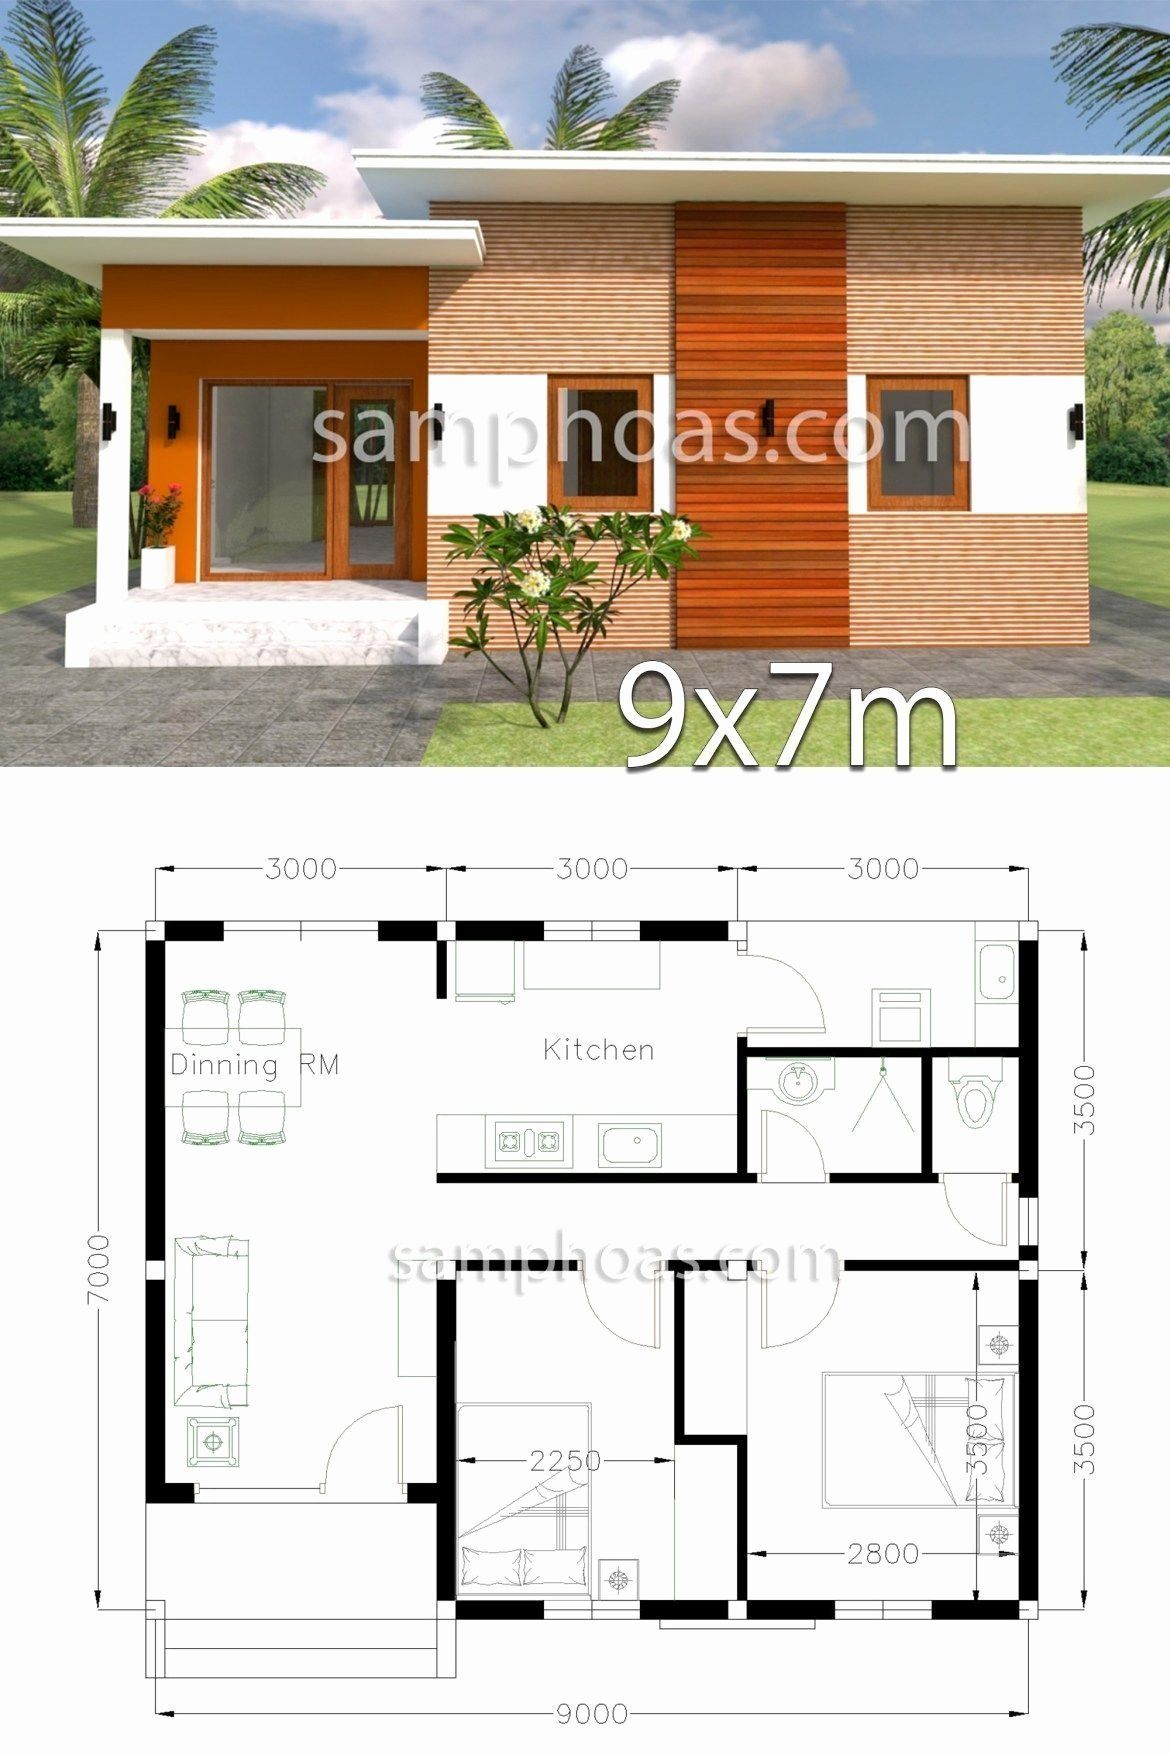 Home Design 3d Awesome Plan 3d Home Design 9x7m 2 Bedrooms Samphoas Plansearch Projetos De Casas Pequenas Projetos De Casas Populares Projectos De Casas